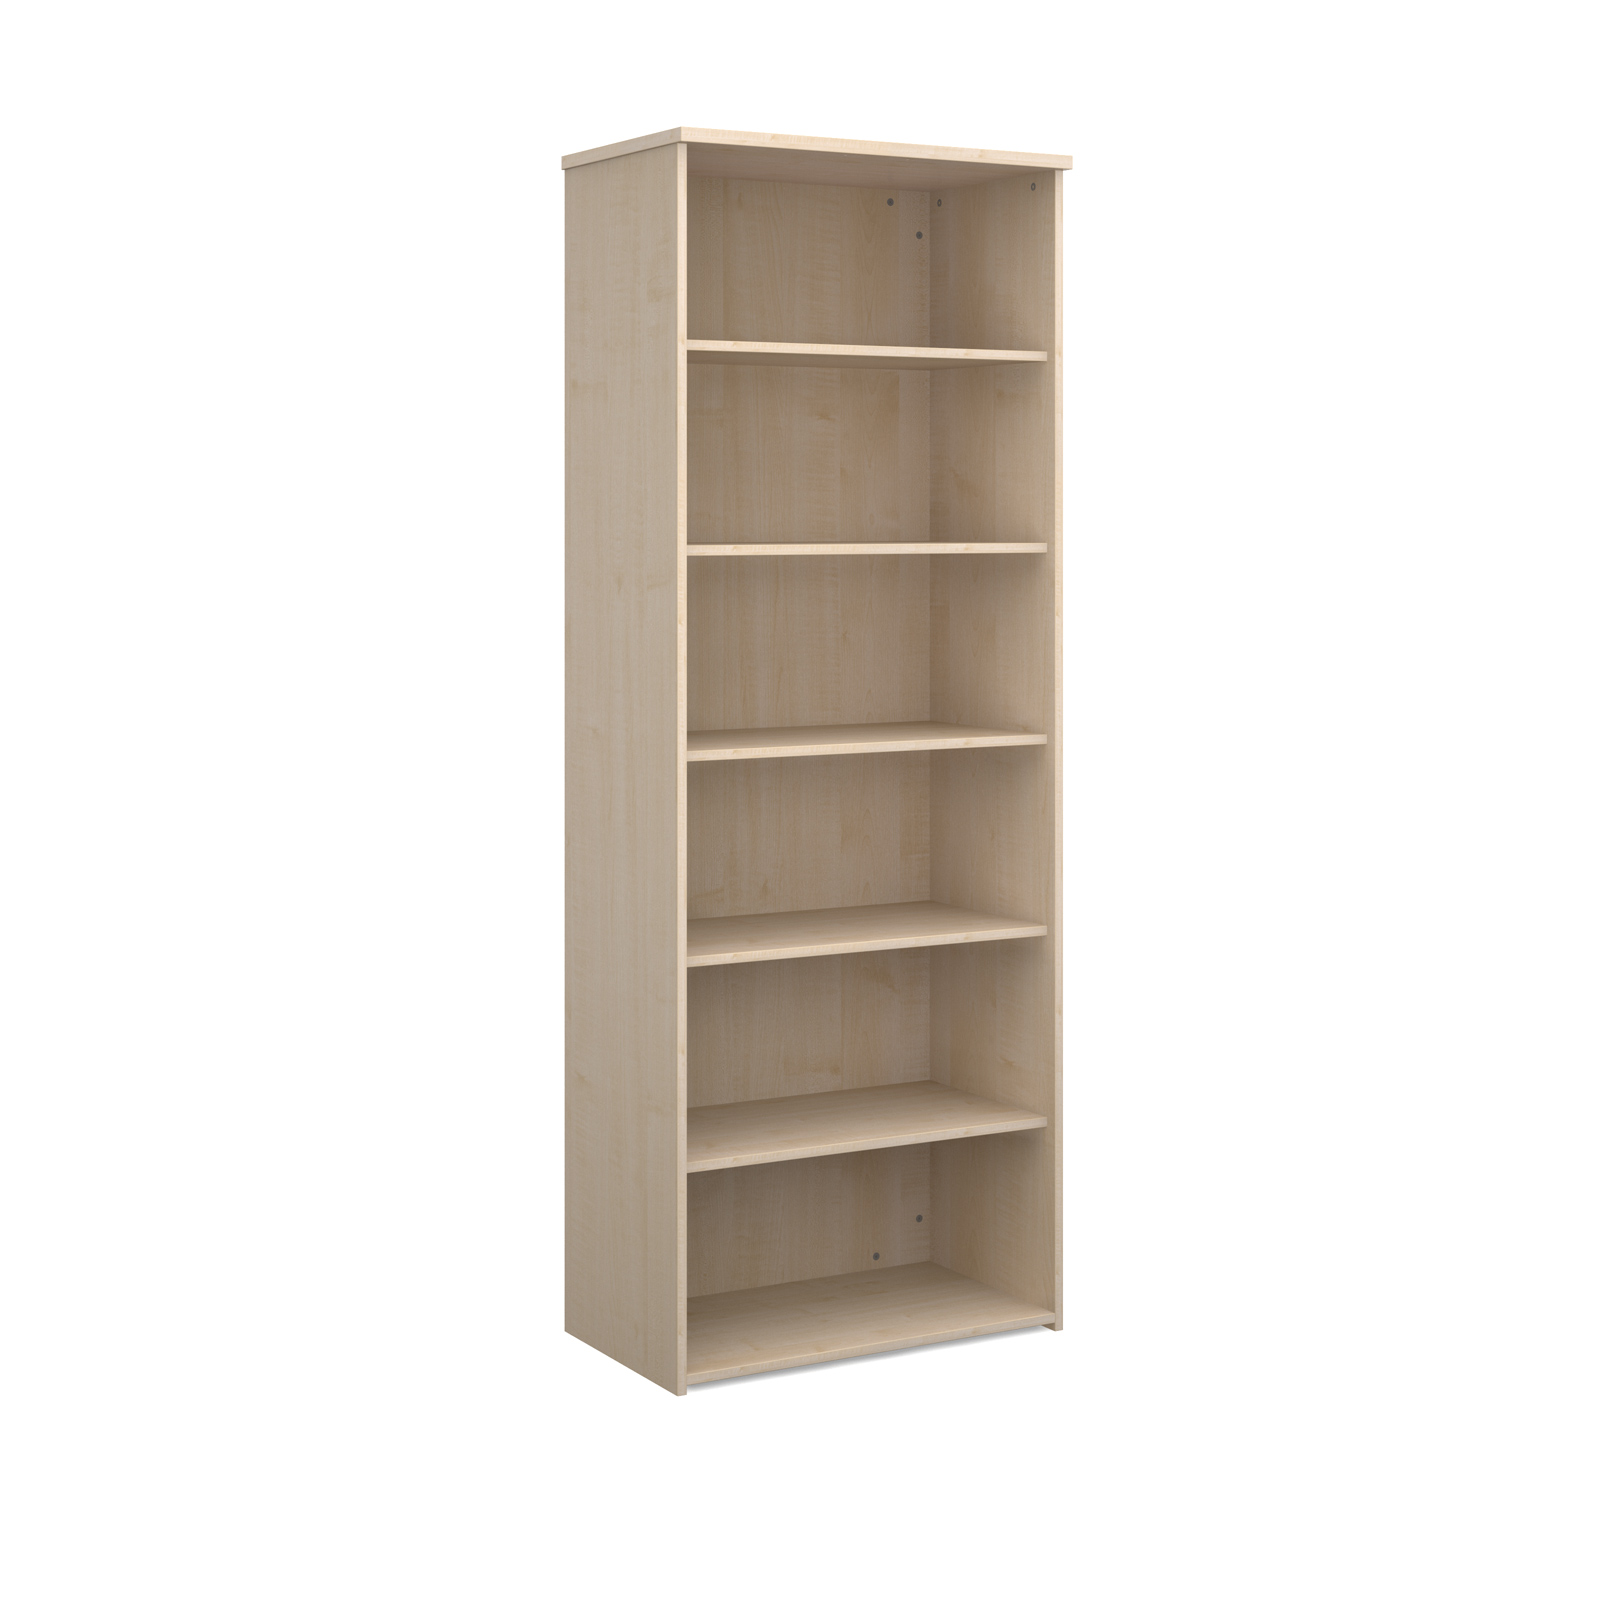 Over 1200mm High Universal bookcase 2140mm high with 5 shelves - maple